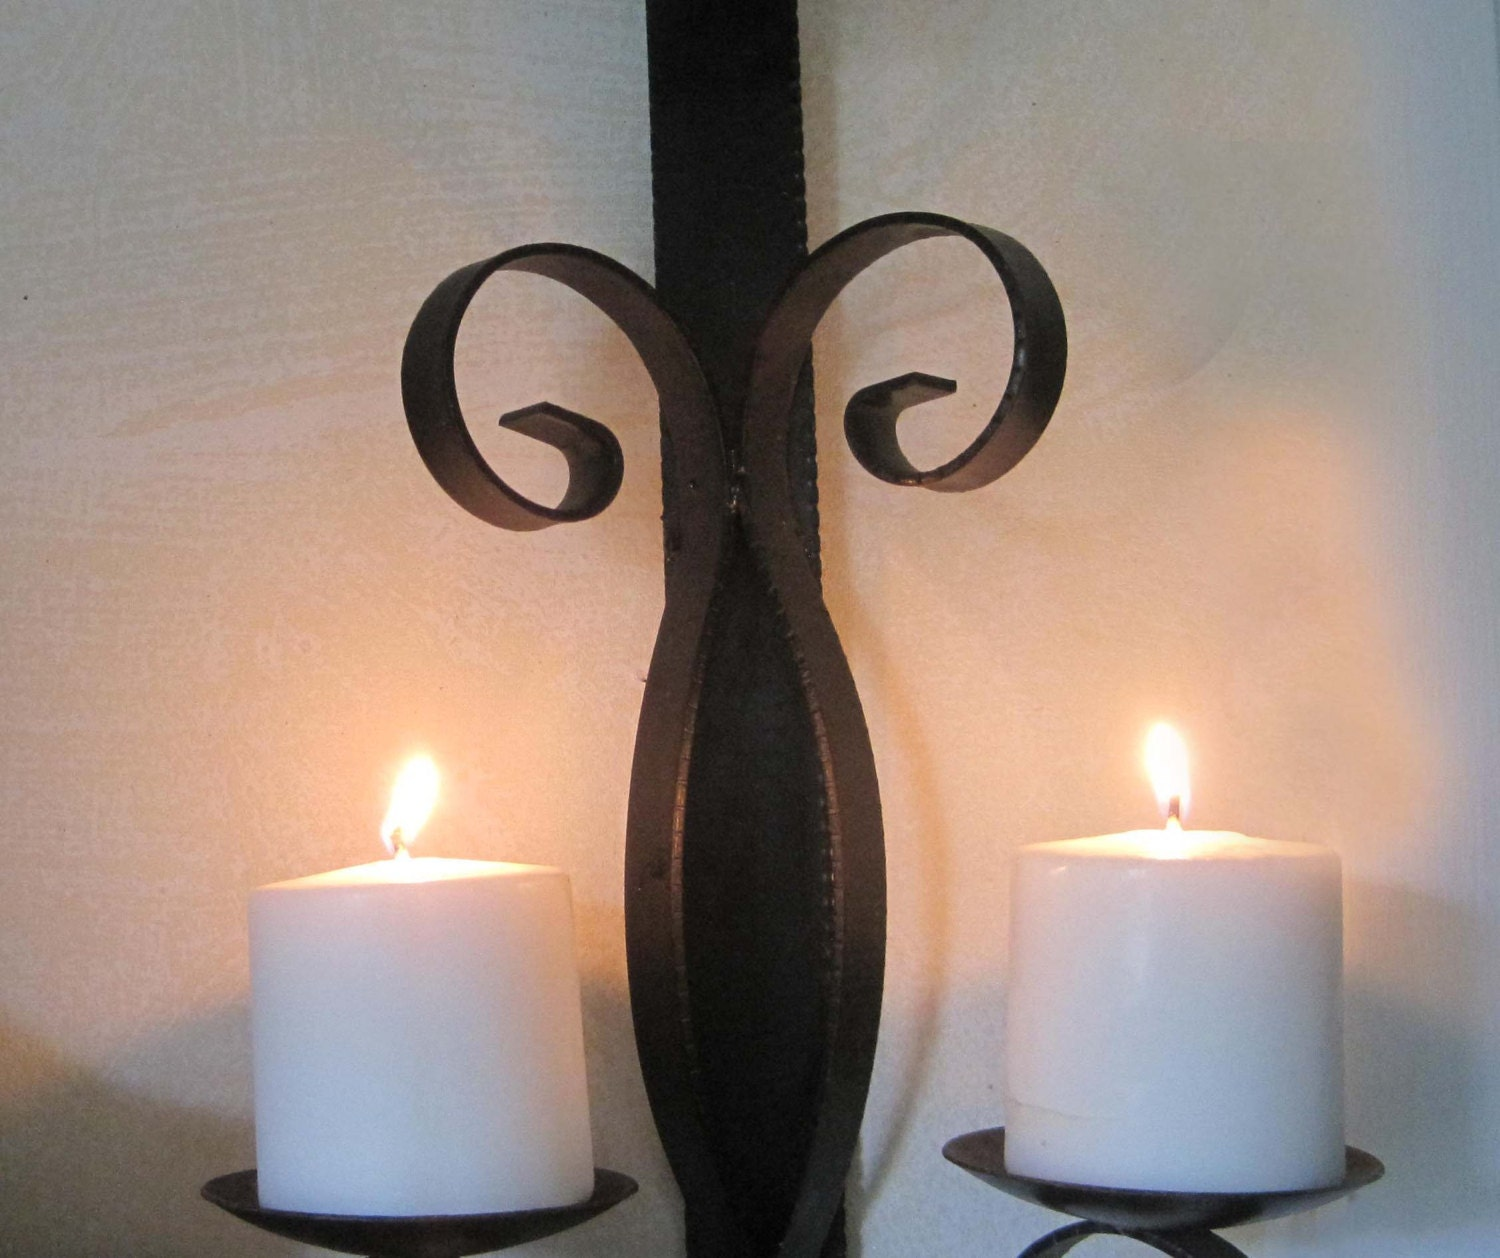 Wrought Iron Candle Holder Wall Sconce Black Medieval